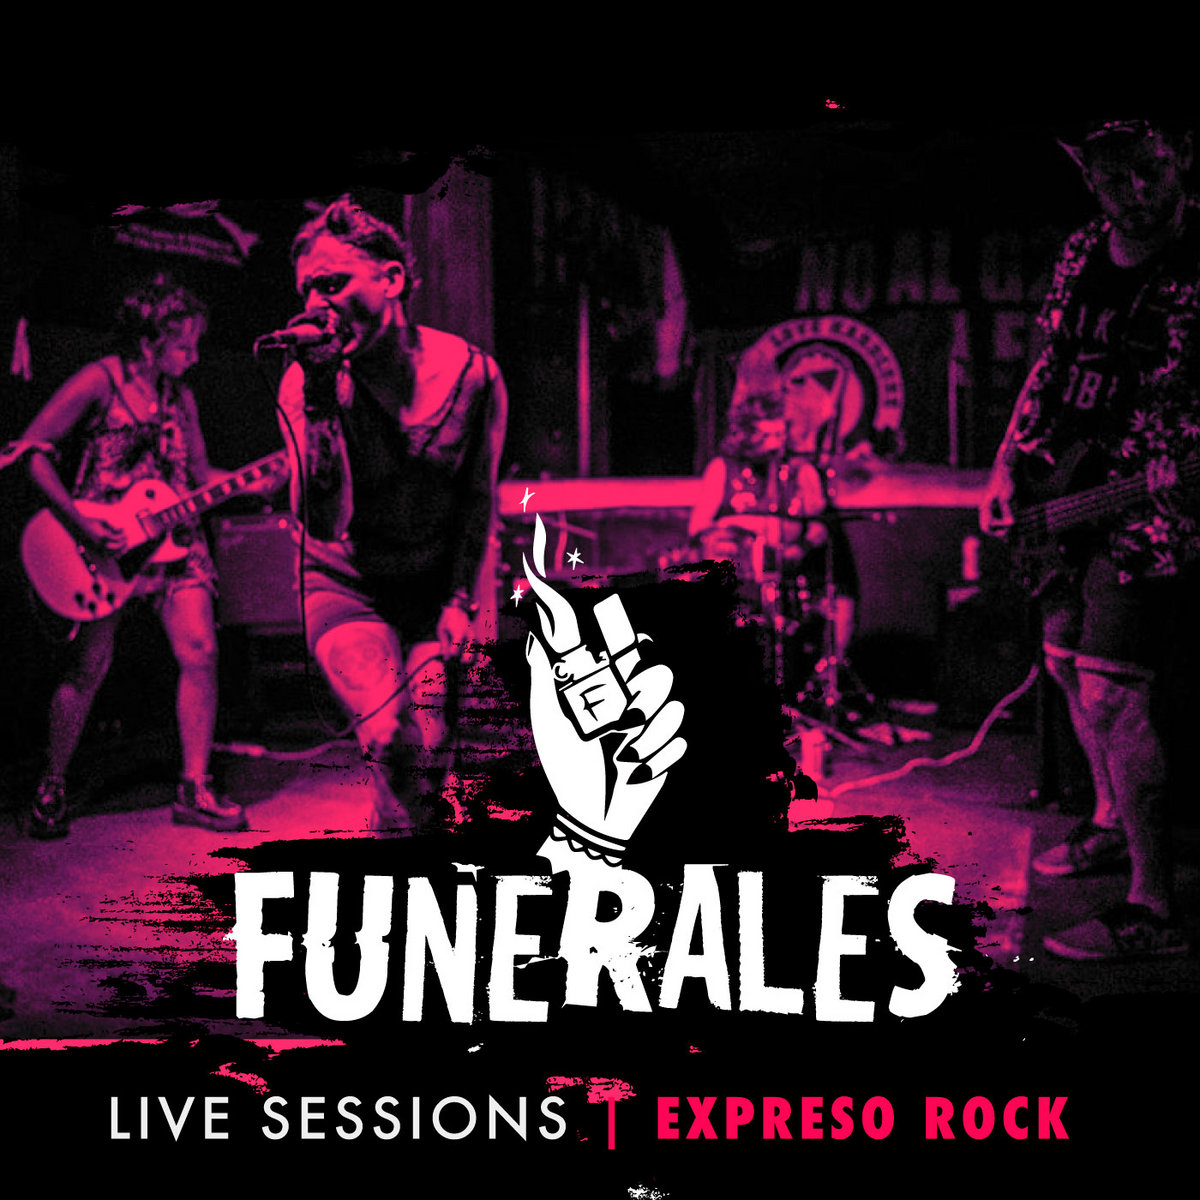 Live Sessions - Expreso Rock